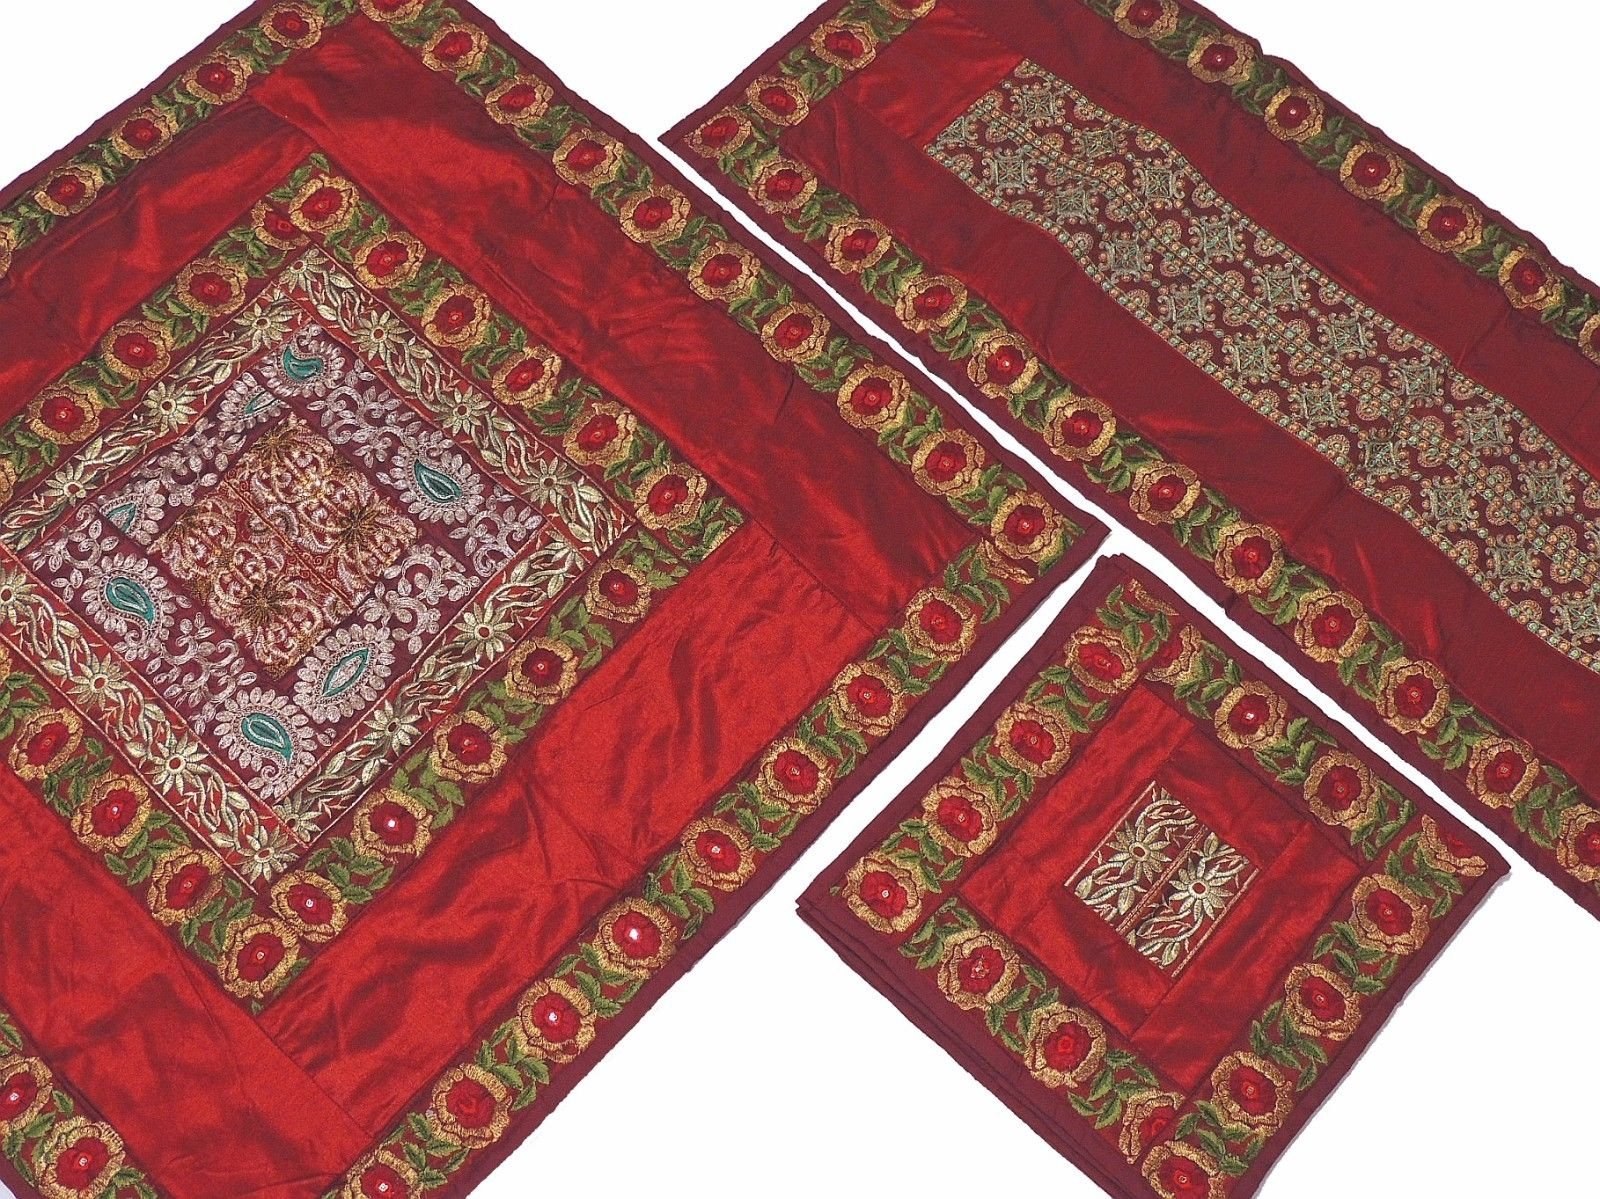 NovaHaat Burgundy Pretty Embroidered Tablecloth, Table Runner and 4 Placemats Set in Dupioni Art Silk from India ~ Tablecloth - 40 Inch, Runner - 60 Inch x 20 Inch, Placemats - 16 Inch